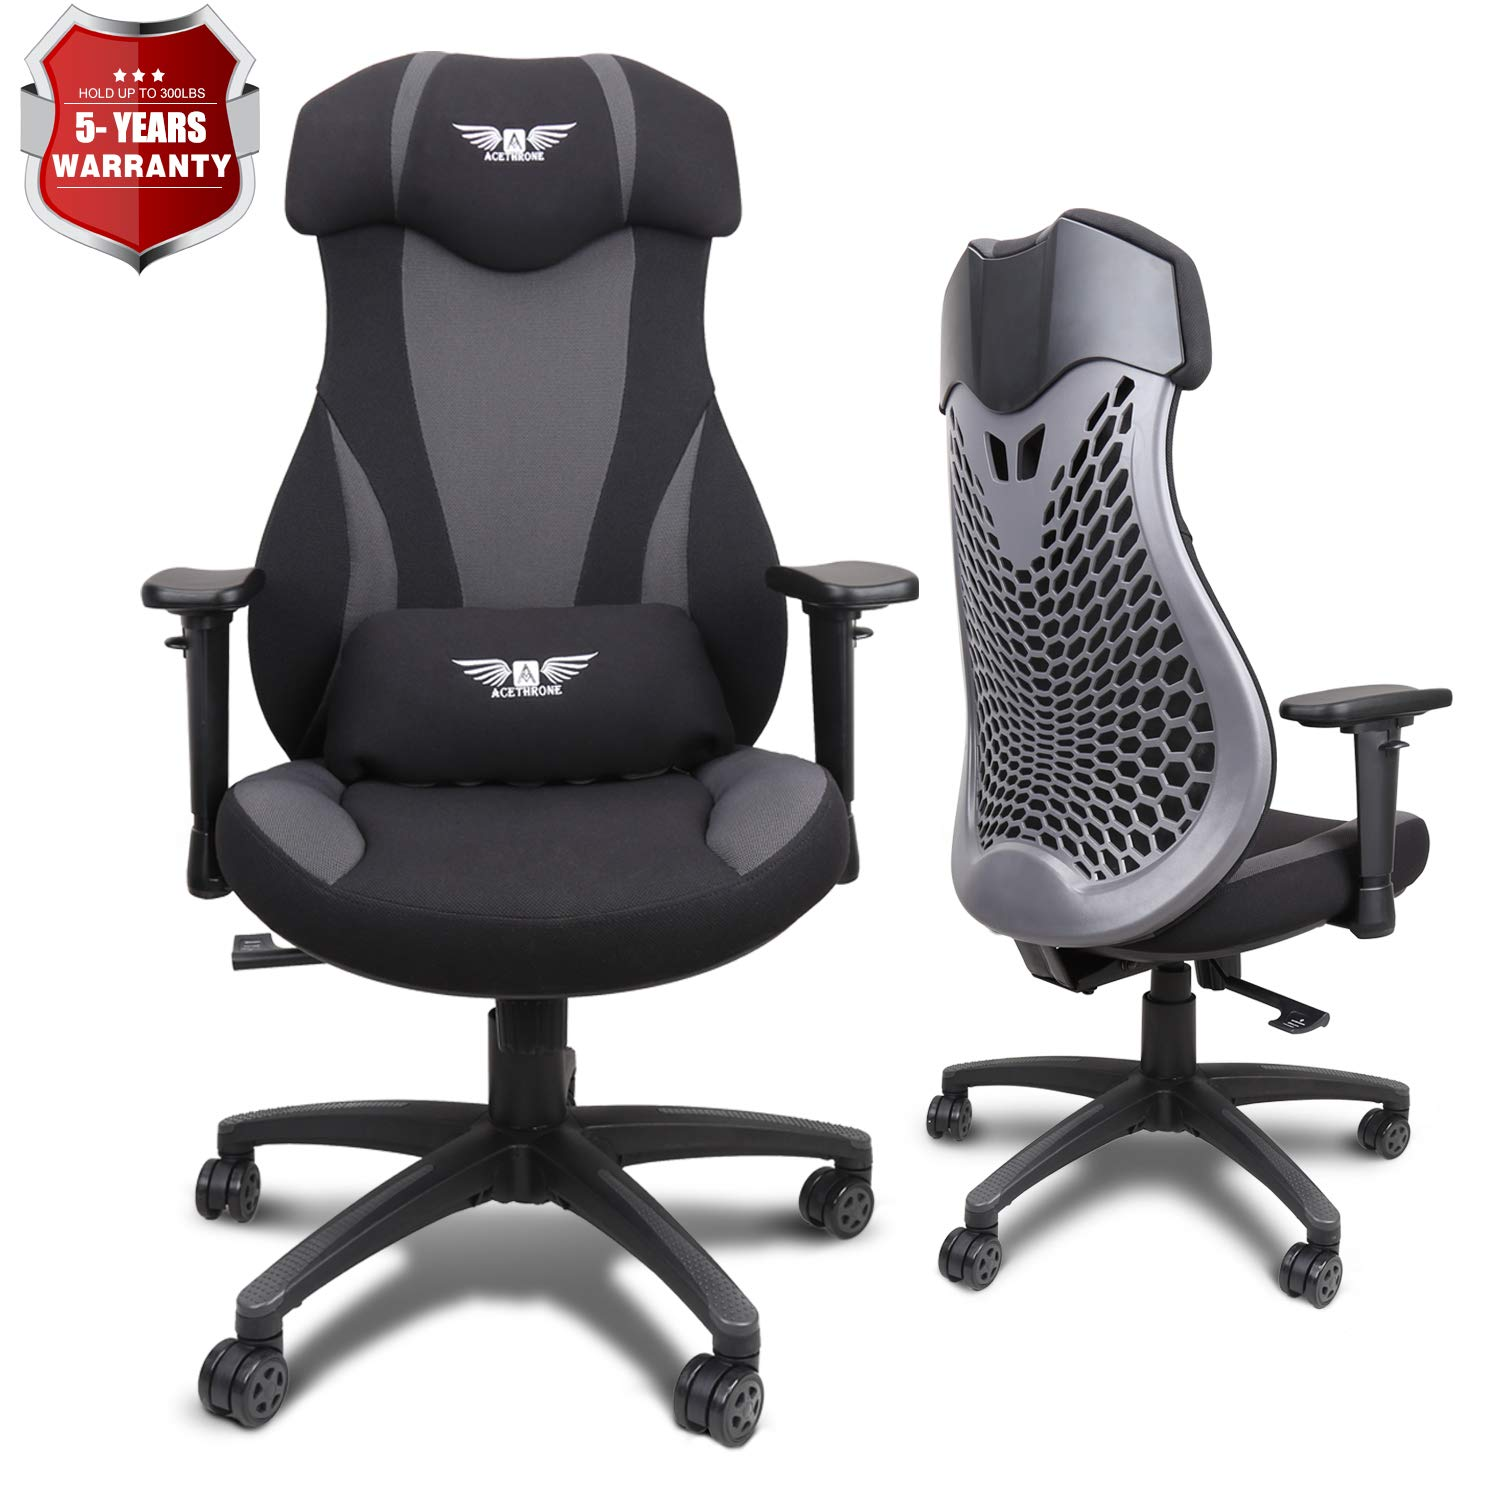 Acethrone PC Gaming Chair Ergonomic Office Chair Desk Chair with Lift Headrest and Armrests, Flexible Adjustable Height and Reclining Device by Acethrone